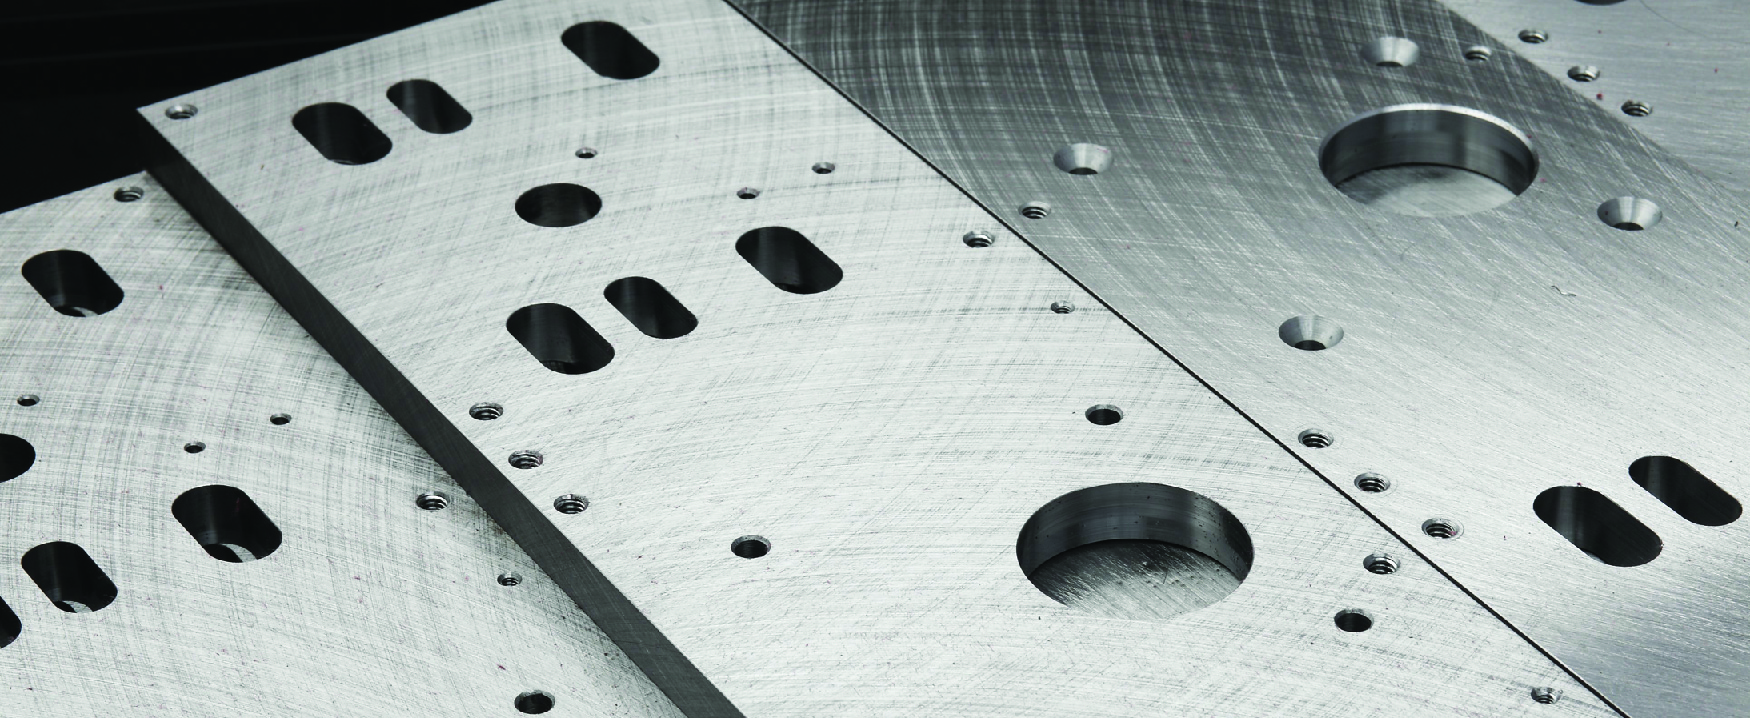 A picture of precision machined metal plates with many holes of differing sizes.